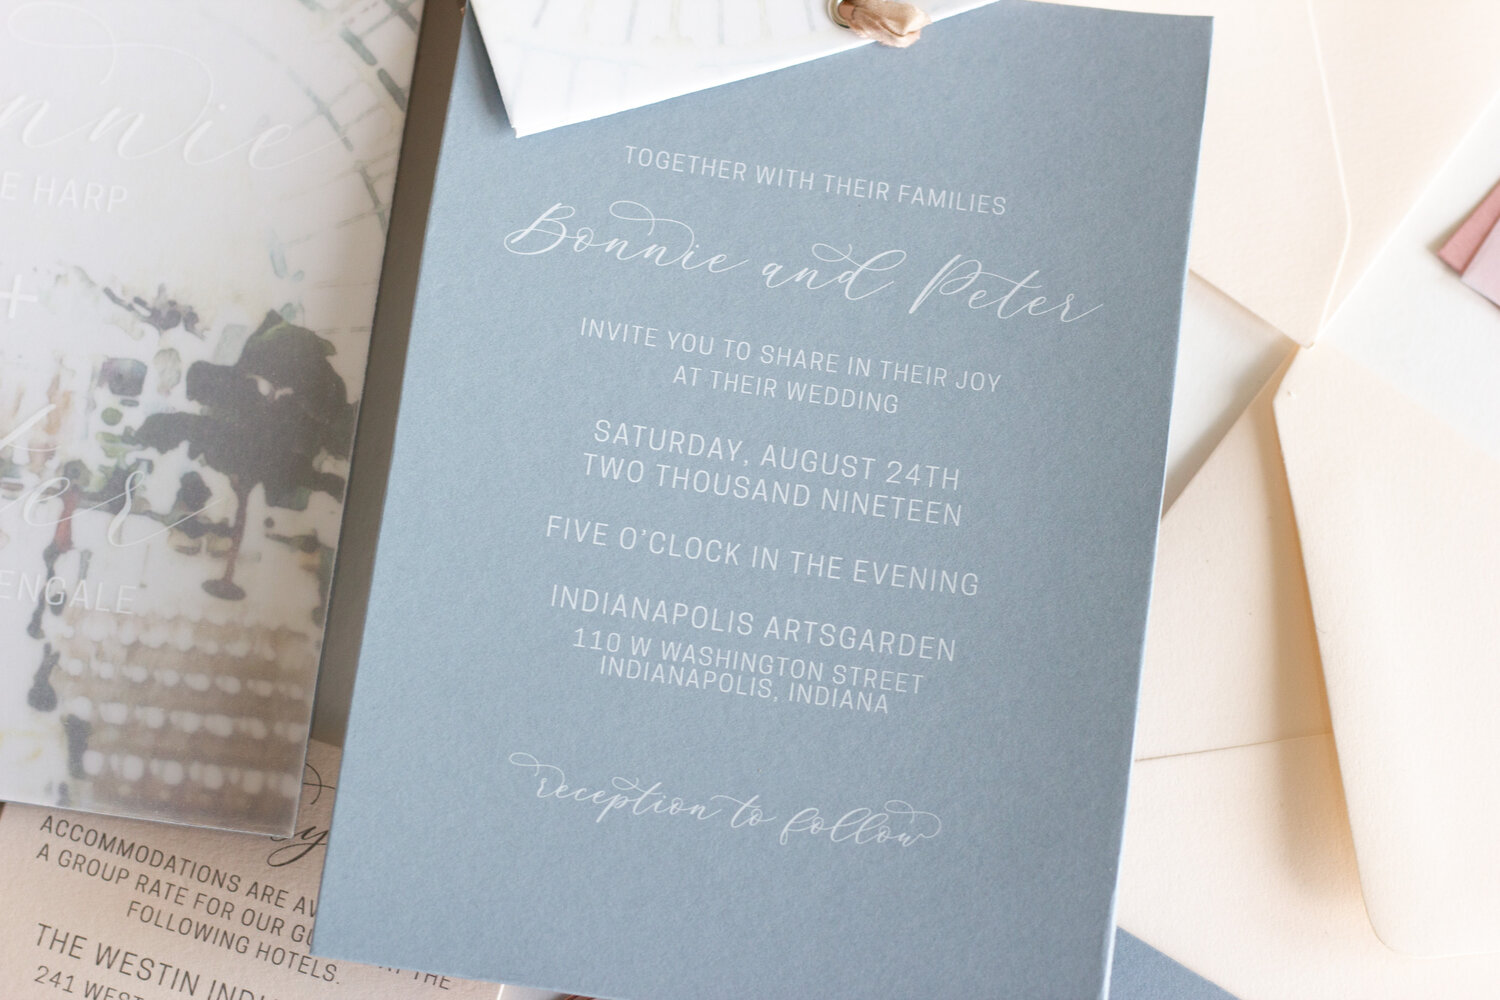 Monogrammed Bridal Save the Date Baby Blue Invitation Wedding Suite Teal Watercolor Floral Invitation Wax Seal Customized